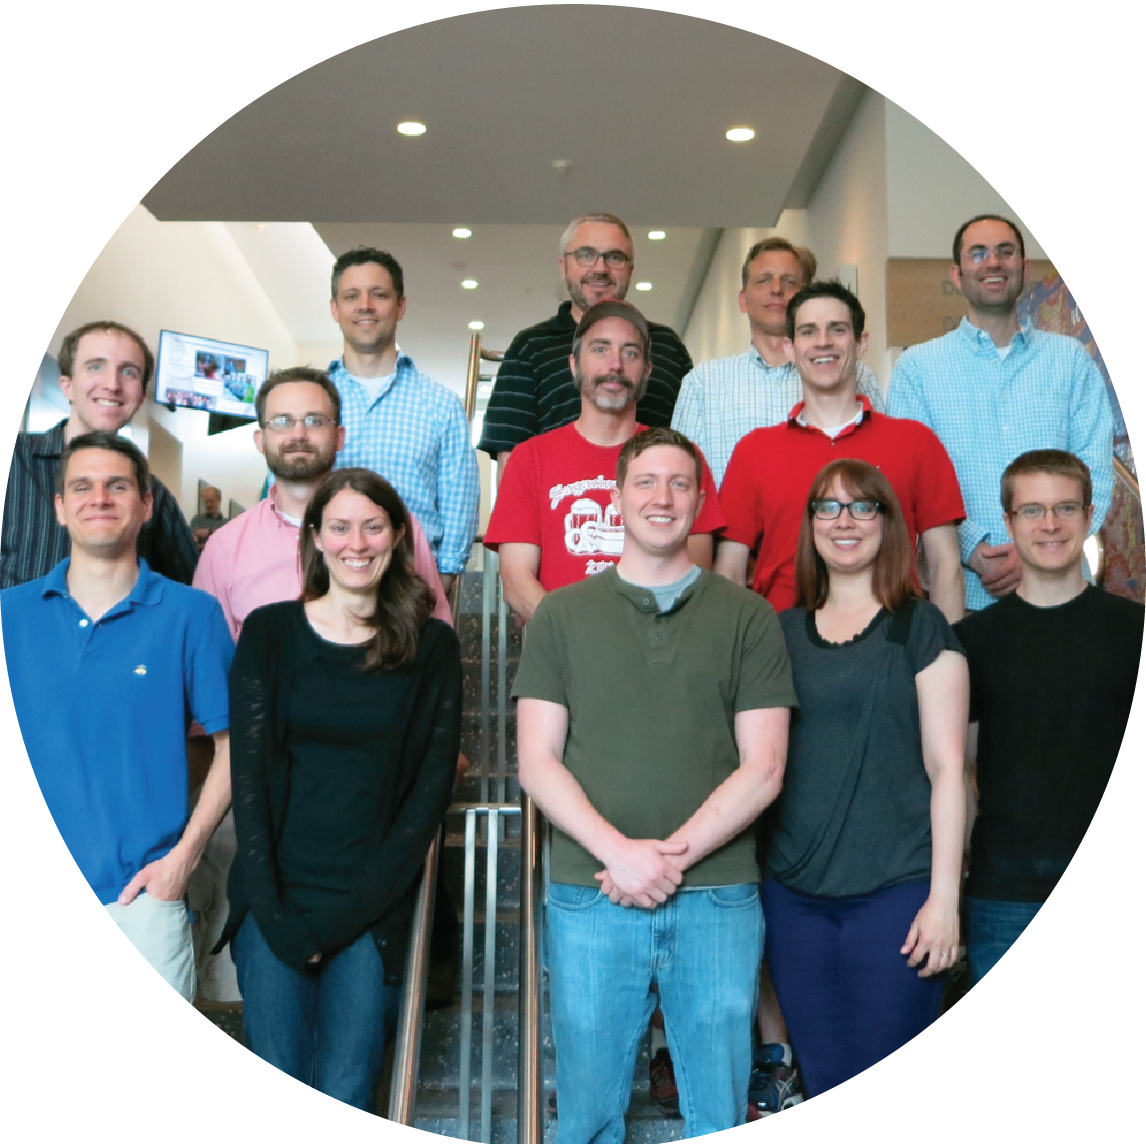 Team Y3K. Back Row (Left to Right): Dave Pagliarini, Mike Westphall, Alan Higbee, Josh Coon<br>Middle Row: Mike Veling, Alex Hebert, Adam Jochem, Arne Ulbrich<br>Front Row: Nick Kwiecien, Alicia Richards, Matt Rush, Elyse Freiberger, Jon Stefely<br>Not Pictured: Kyle Robinson, Paul Hutchins, Xiao Guo, Zach Kemmerer, Kyle Connors, Edna Trujillo, Jacob Sokol, and Harald Marx